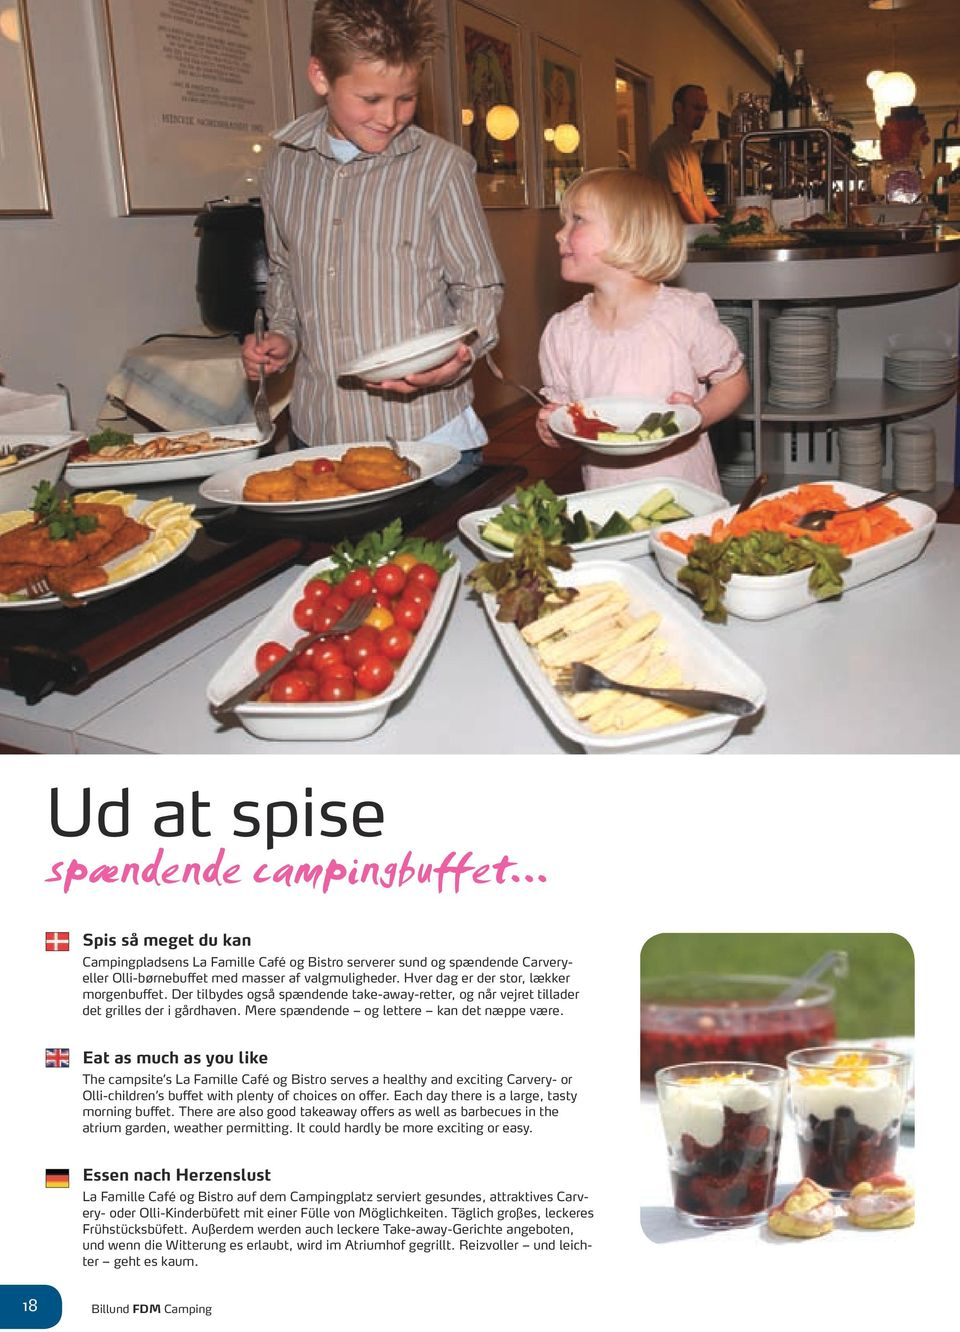 Eat as much as you like The campsite s La Famille Café og Bistro serves a healthy and exciting Carvery- or Olli-children s buffet with plenty of choices on offer.